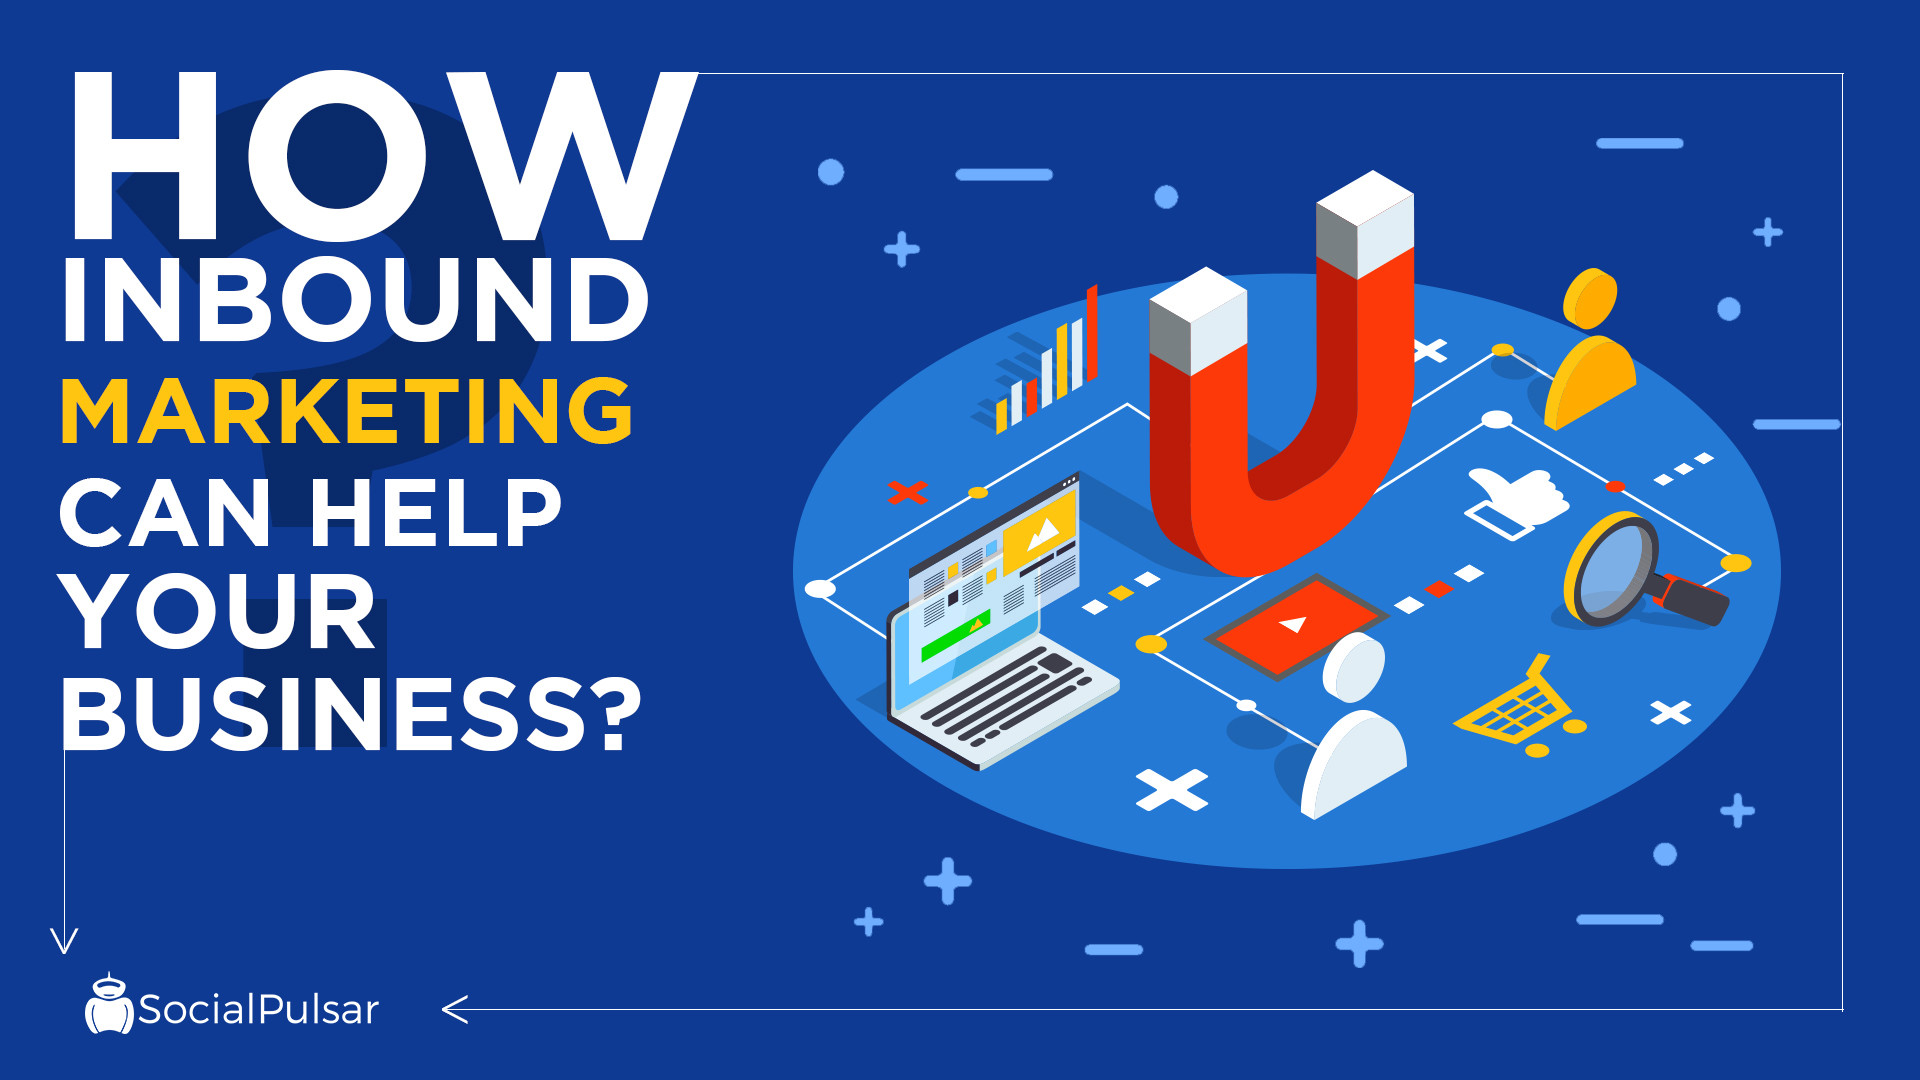 How Inbound Marketing Can Help Your Business?